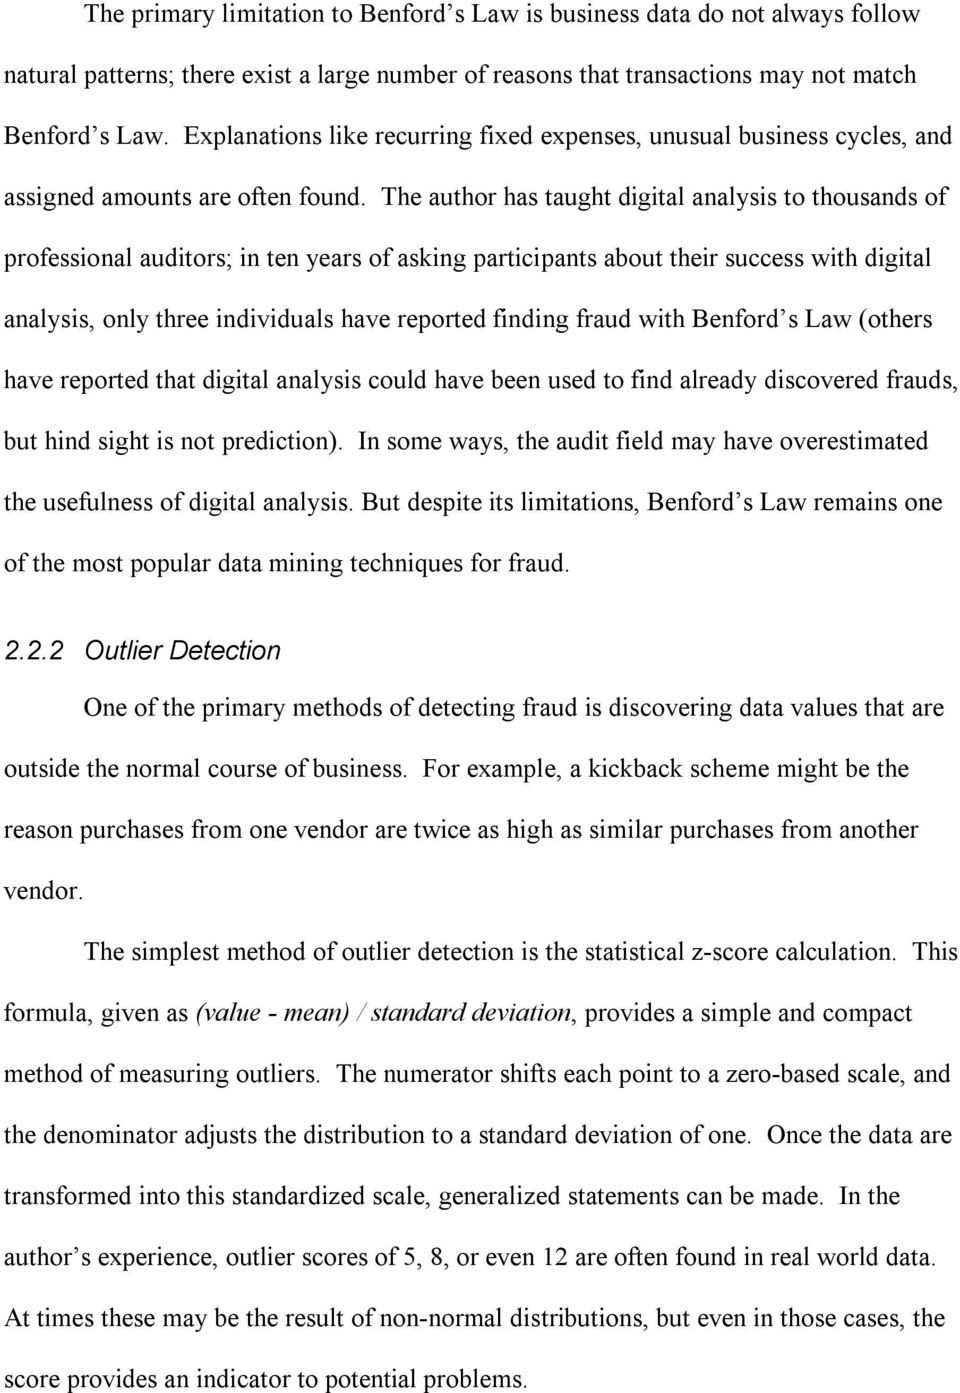 The author has taught digital analysis to thousands of professional auditors; in ten years of asking participants about their success with digital analysis, only three individuals have reported